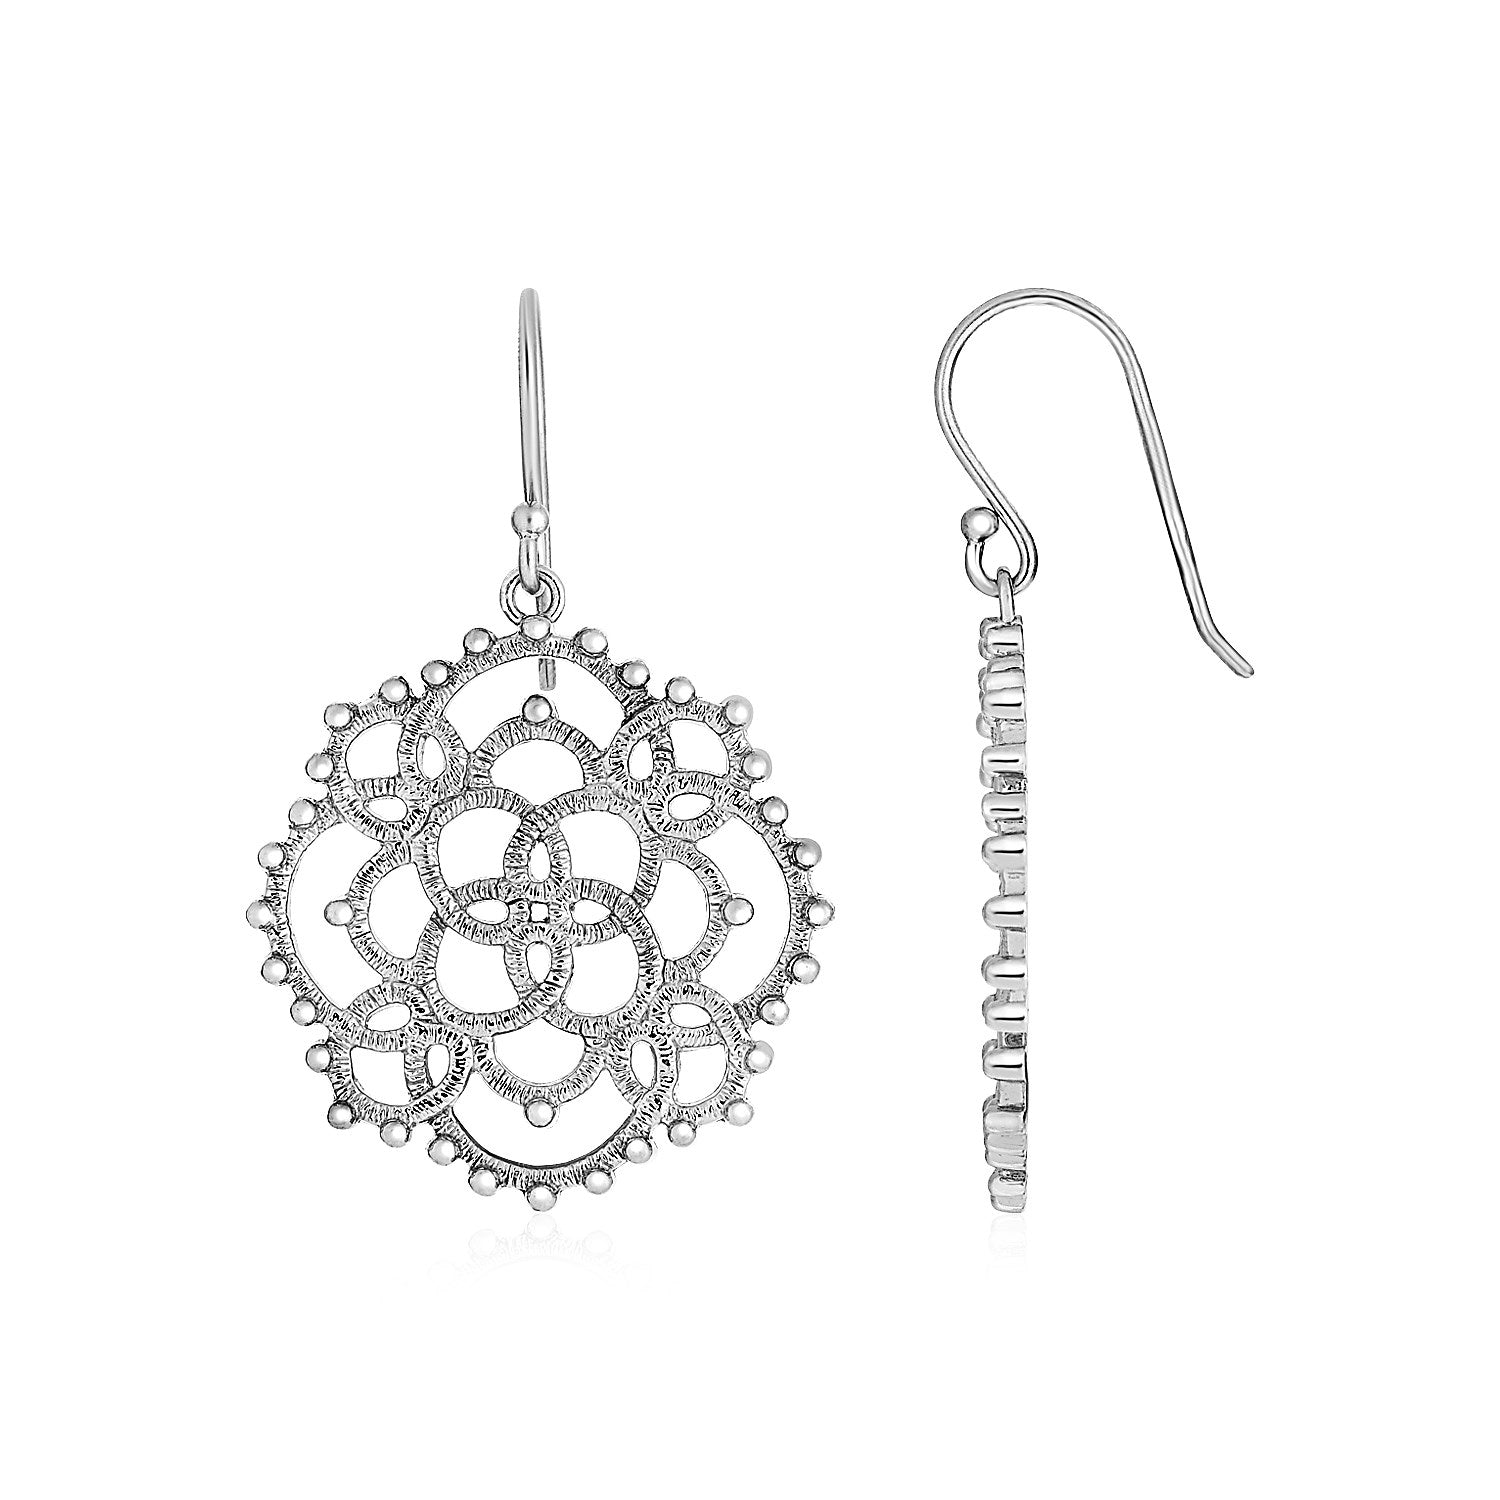 Unique Modern Paris Style Earrings with Textured Loop Pattern Drops in Sterling Silver